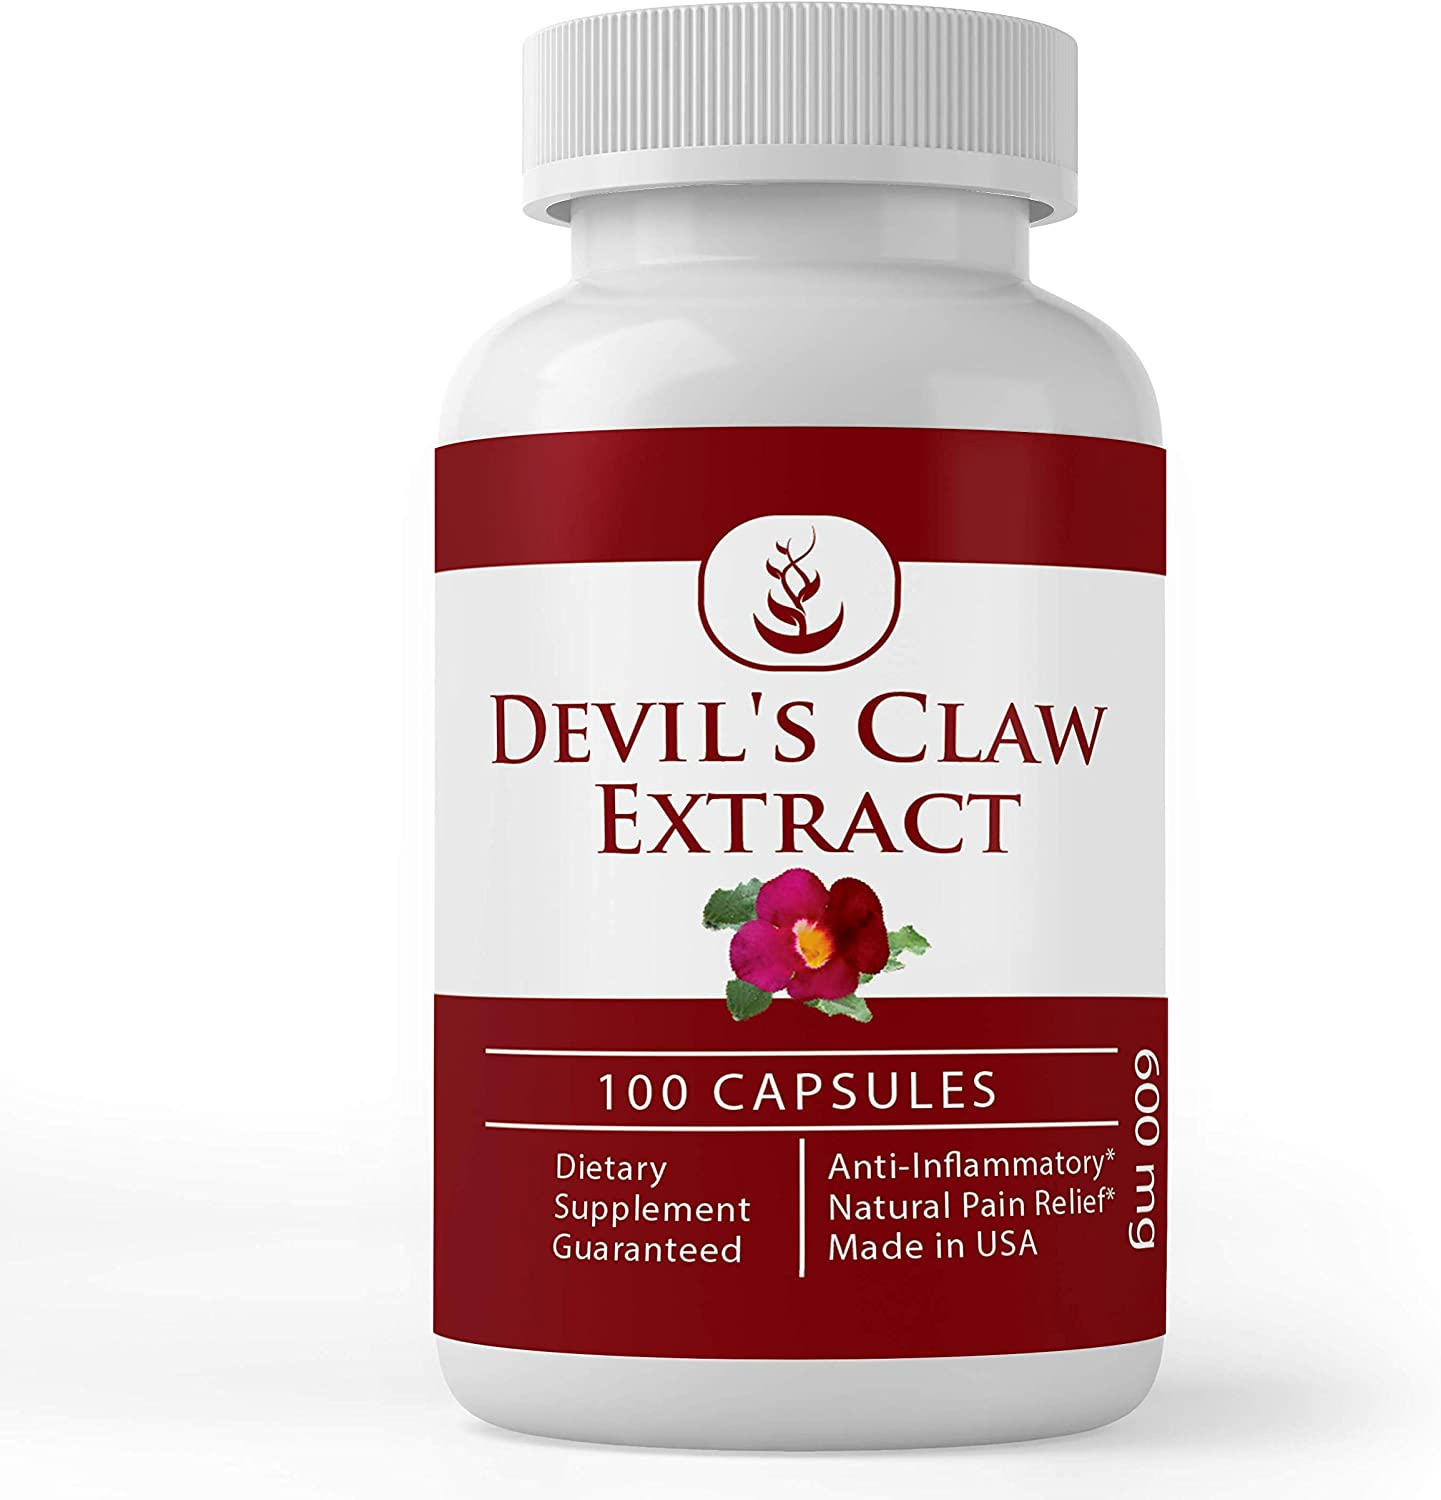 Devil's Claw Root Extract, Non-GMO, Gluten-Free, Lab-Tested for Purity, Potent, Made in The USA, No Stearates or Rice Fillers, Satisfaction Guaranteed (600 mg): Health & Personal Care